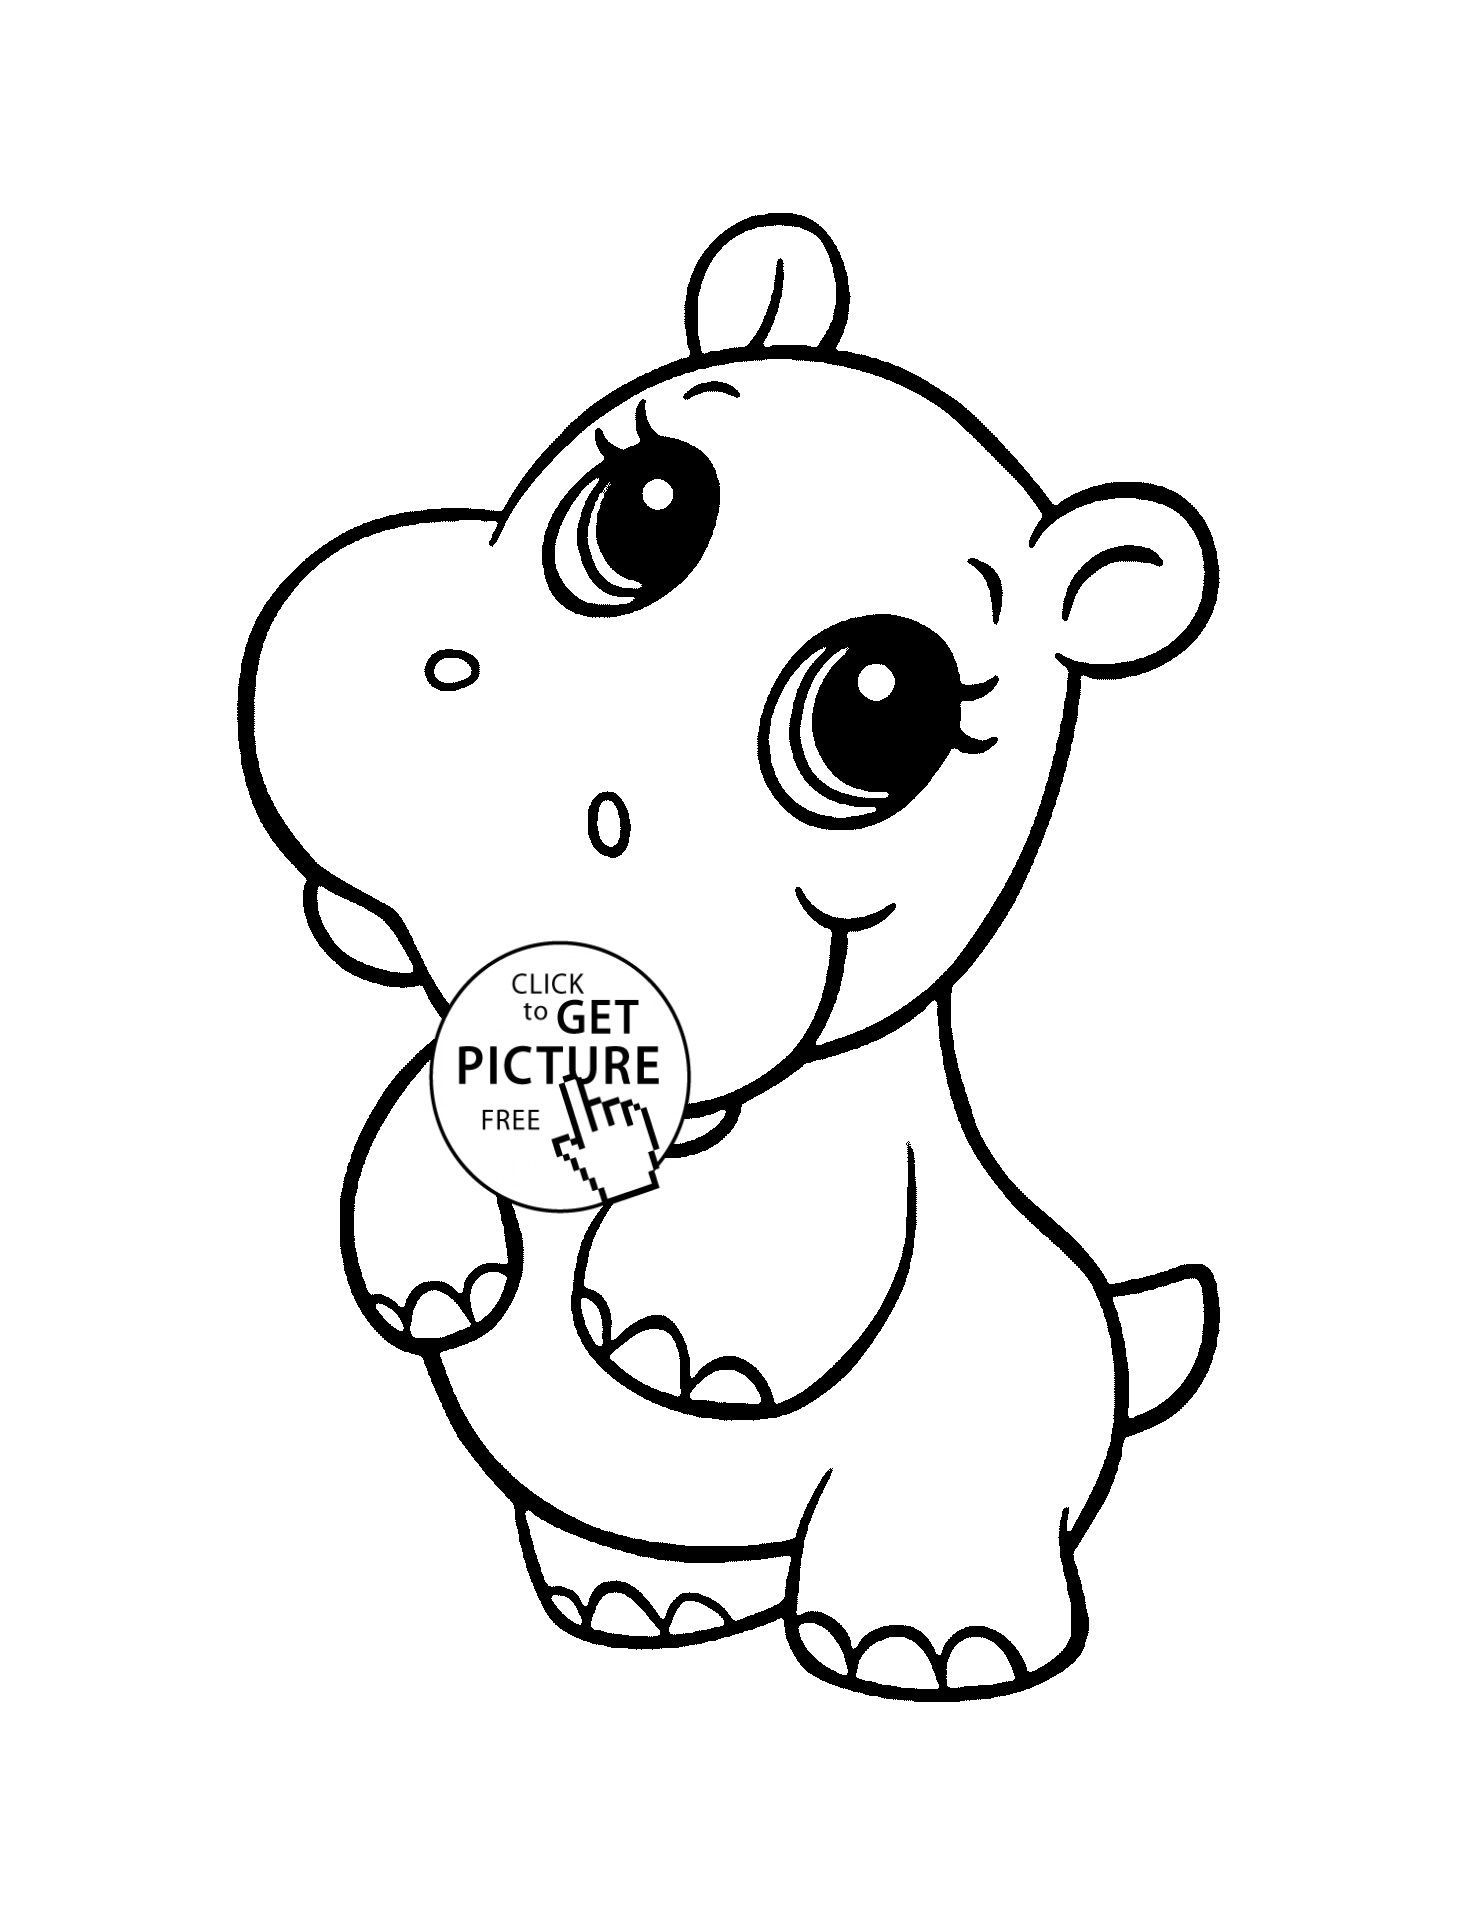 50 Cute Baby Animal Coloring Pages Rp8p 50 Cute Baby Animal Coloring Pages Rp8p Check Mo Zoo Animal Coloring Pages Cute Animals Images Animal Coloring Pages